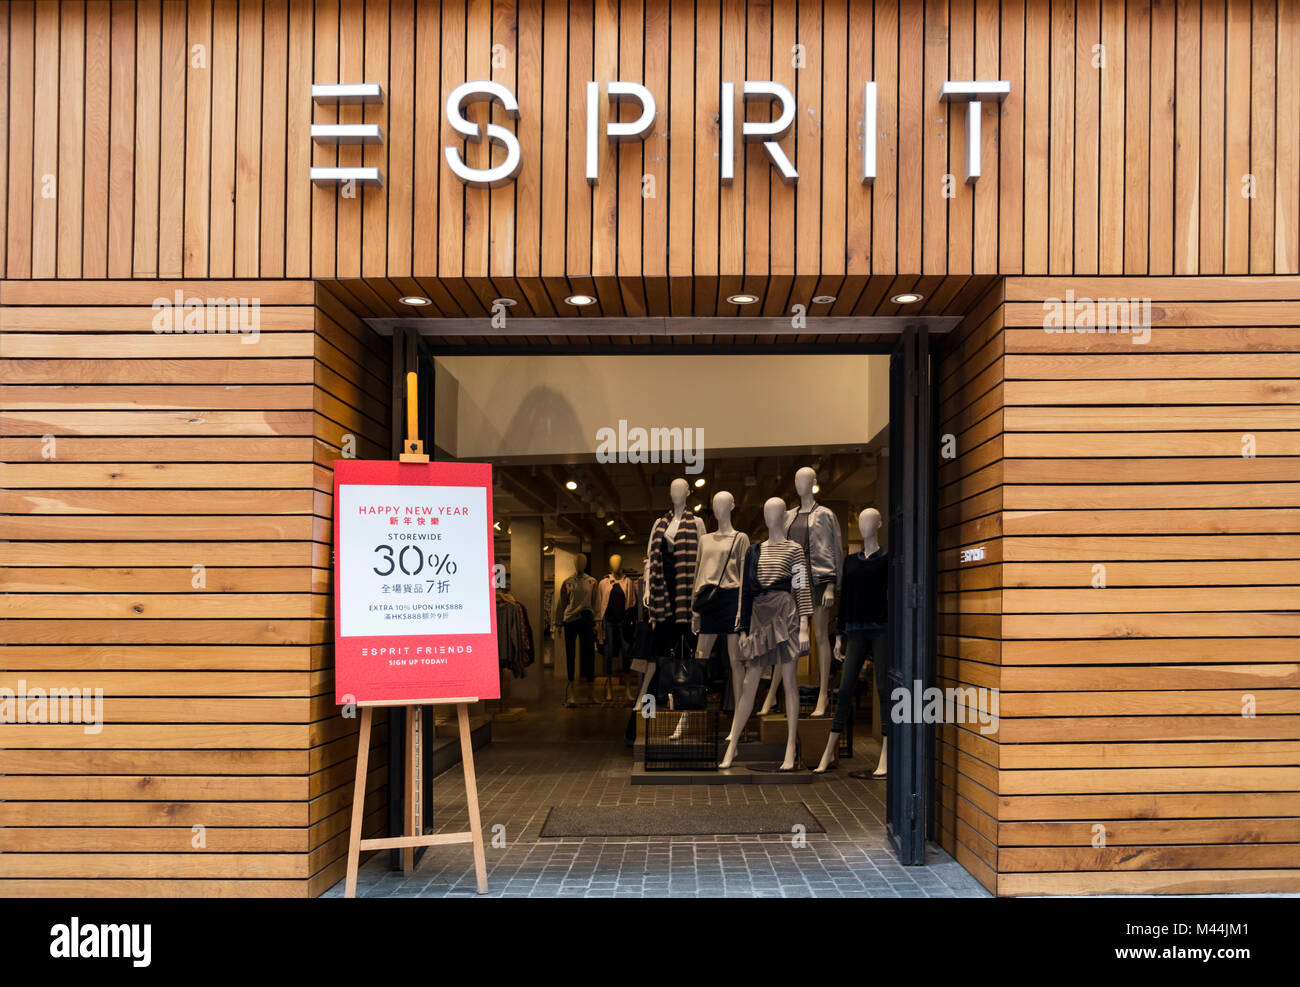 Hong Kong - February 11, 2018: Esprit shop in Hong Kong. Esprit is a manufacturer of clothing, footwear, accessories, Stock Photo